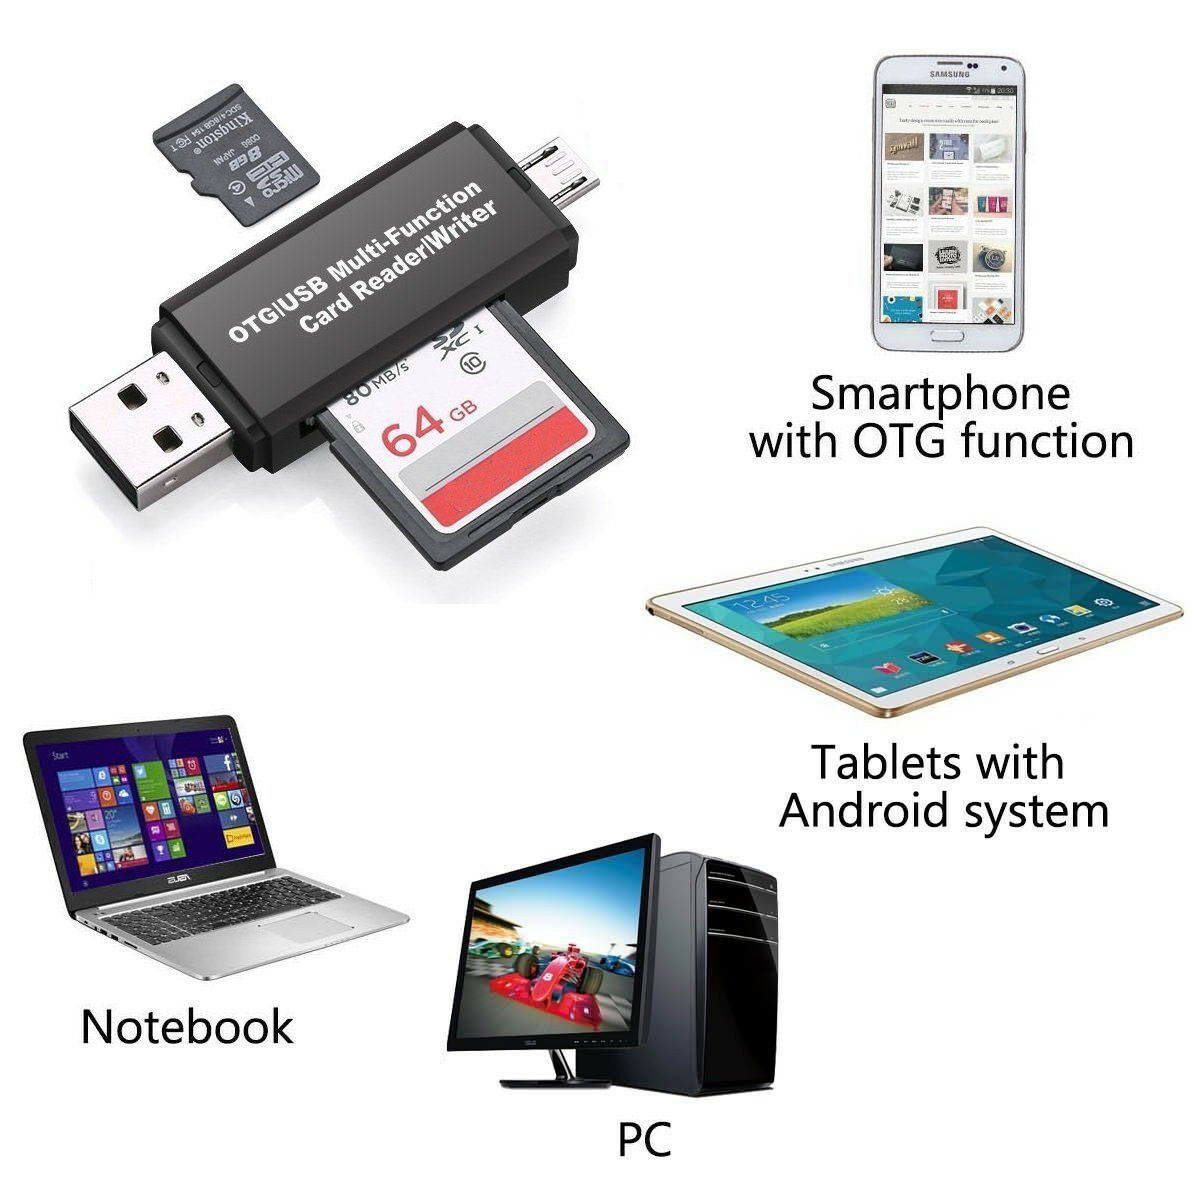 Mobile Phone OTG Expansion Transmission Stability USB 2.0 Plug and Play Support Hot Plug for Android 4.0 and Above Smartphones LJ1 Micro SD Card Readers